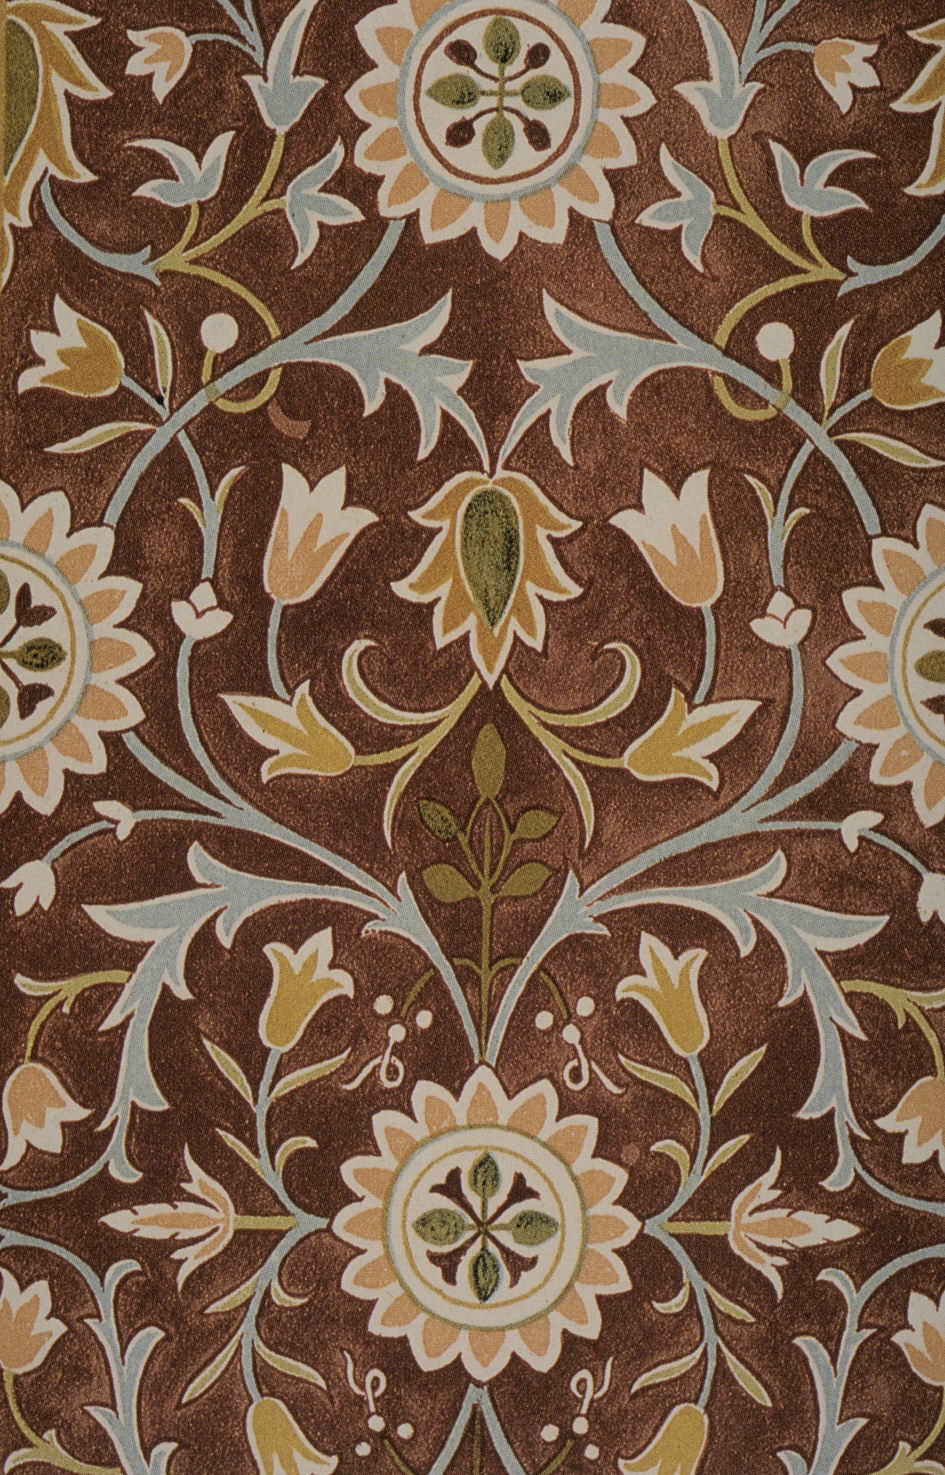 Carpet Design Interesting Filemorris Little Flower Carpet Design Detail  Wikimedia Commons 2017